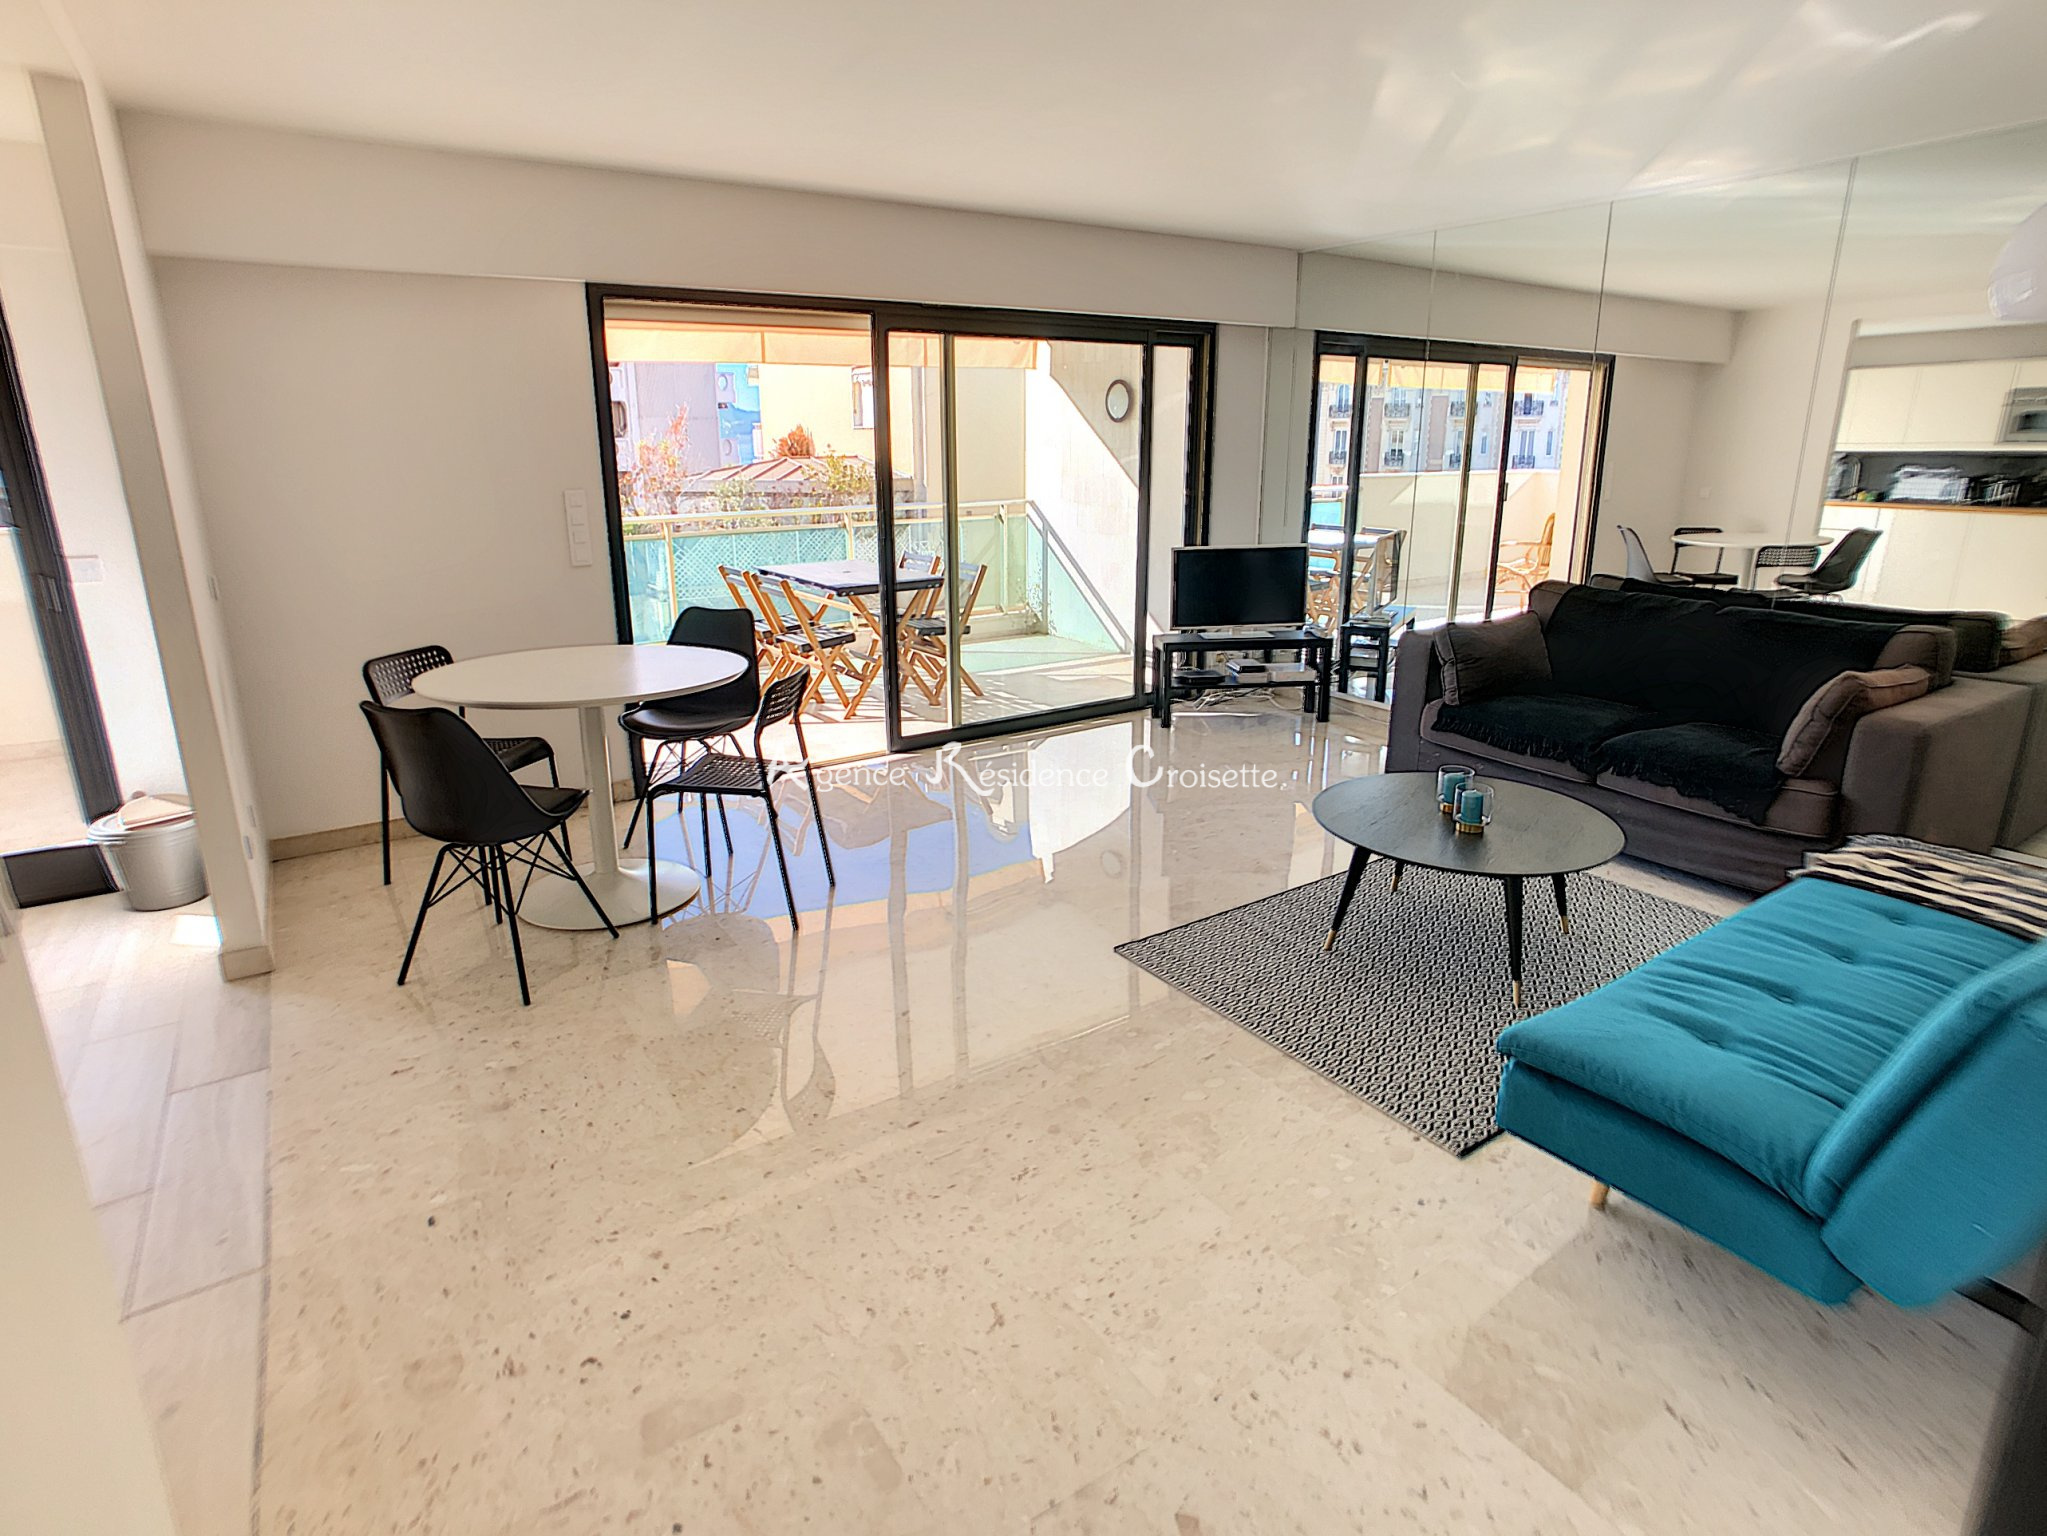 Image_5, Appartement, Cannes, ref :339